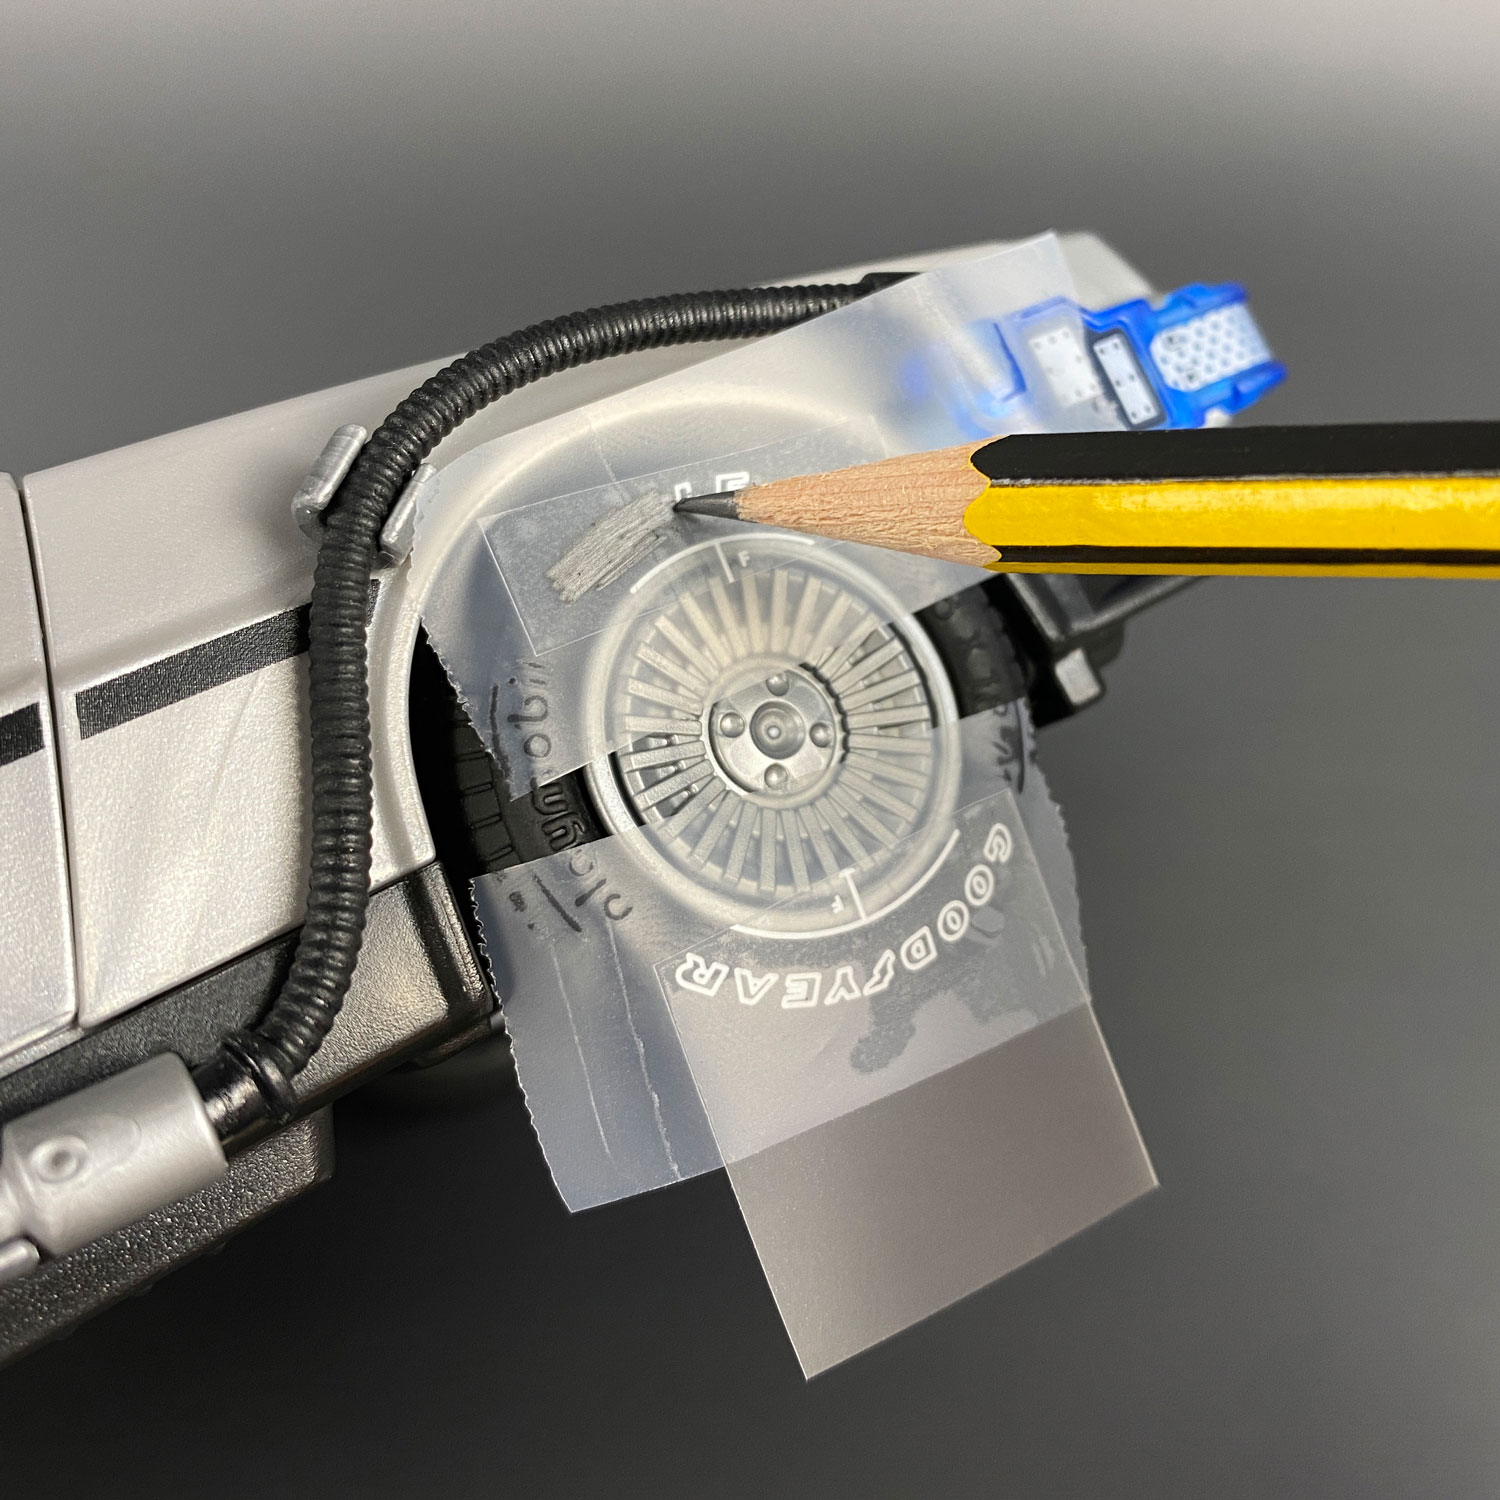 Using pencil point to apply Playmobil DeLorean Tyre Transfers